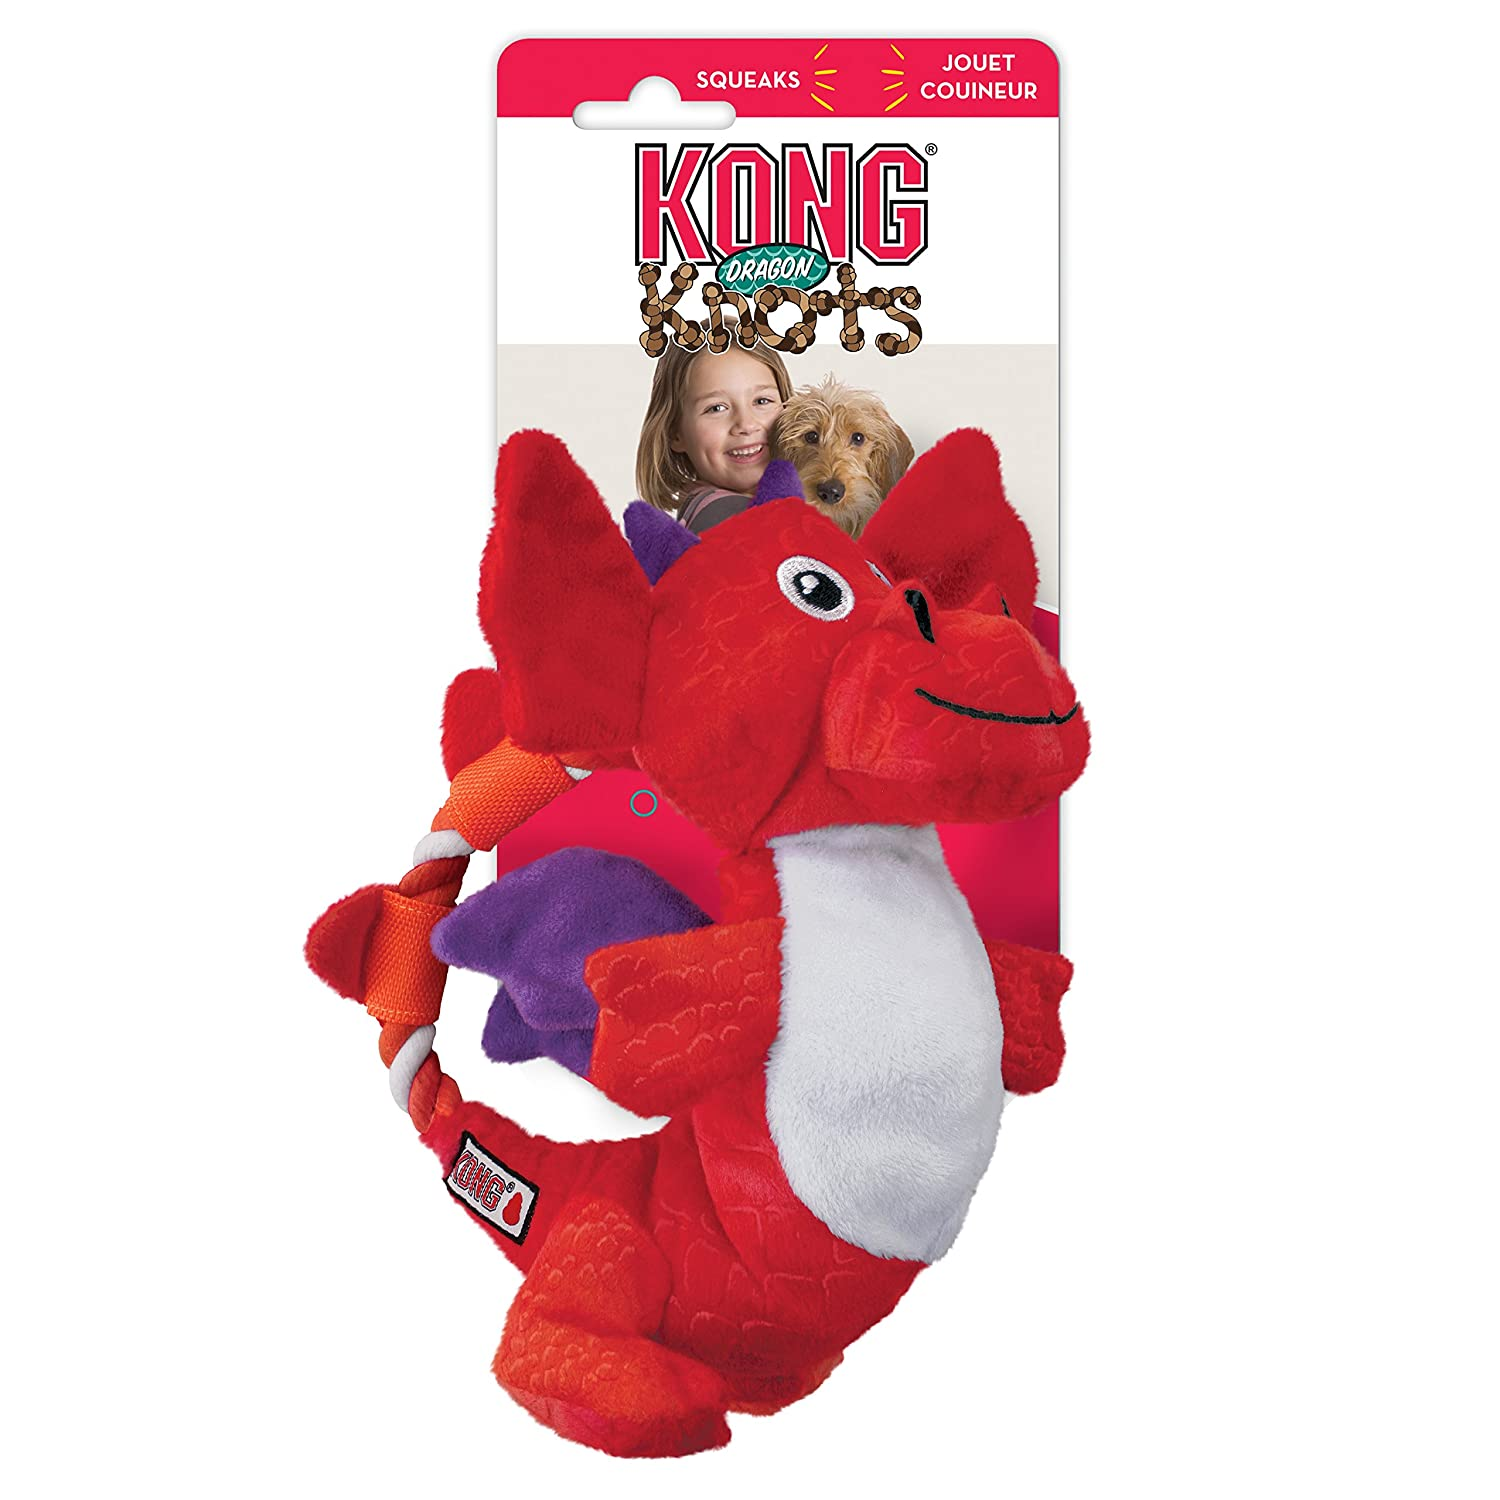 Kong Cordes à nœuds Dragon, M/L, Assortiment de Couleurs NKK21